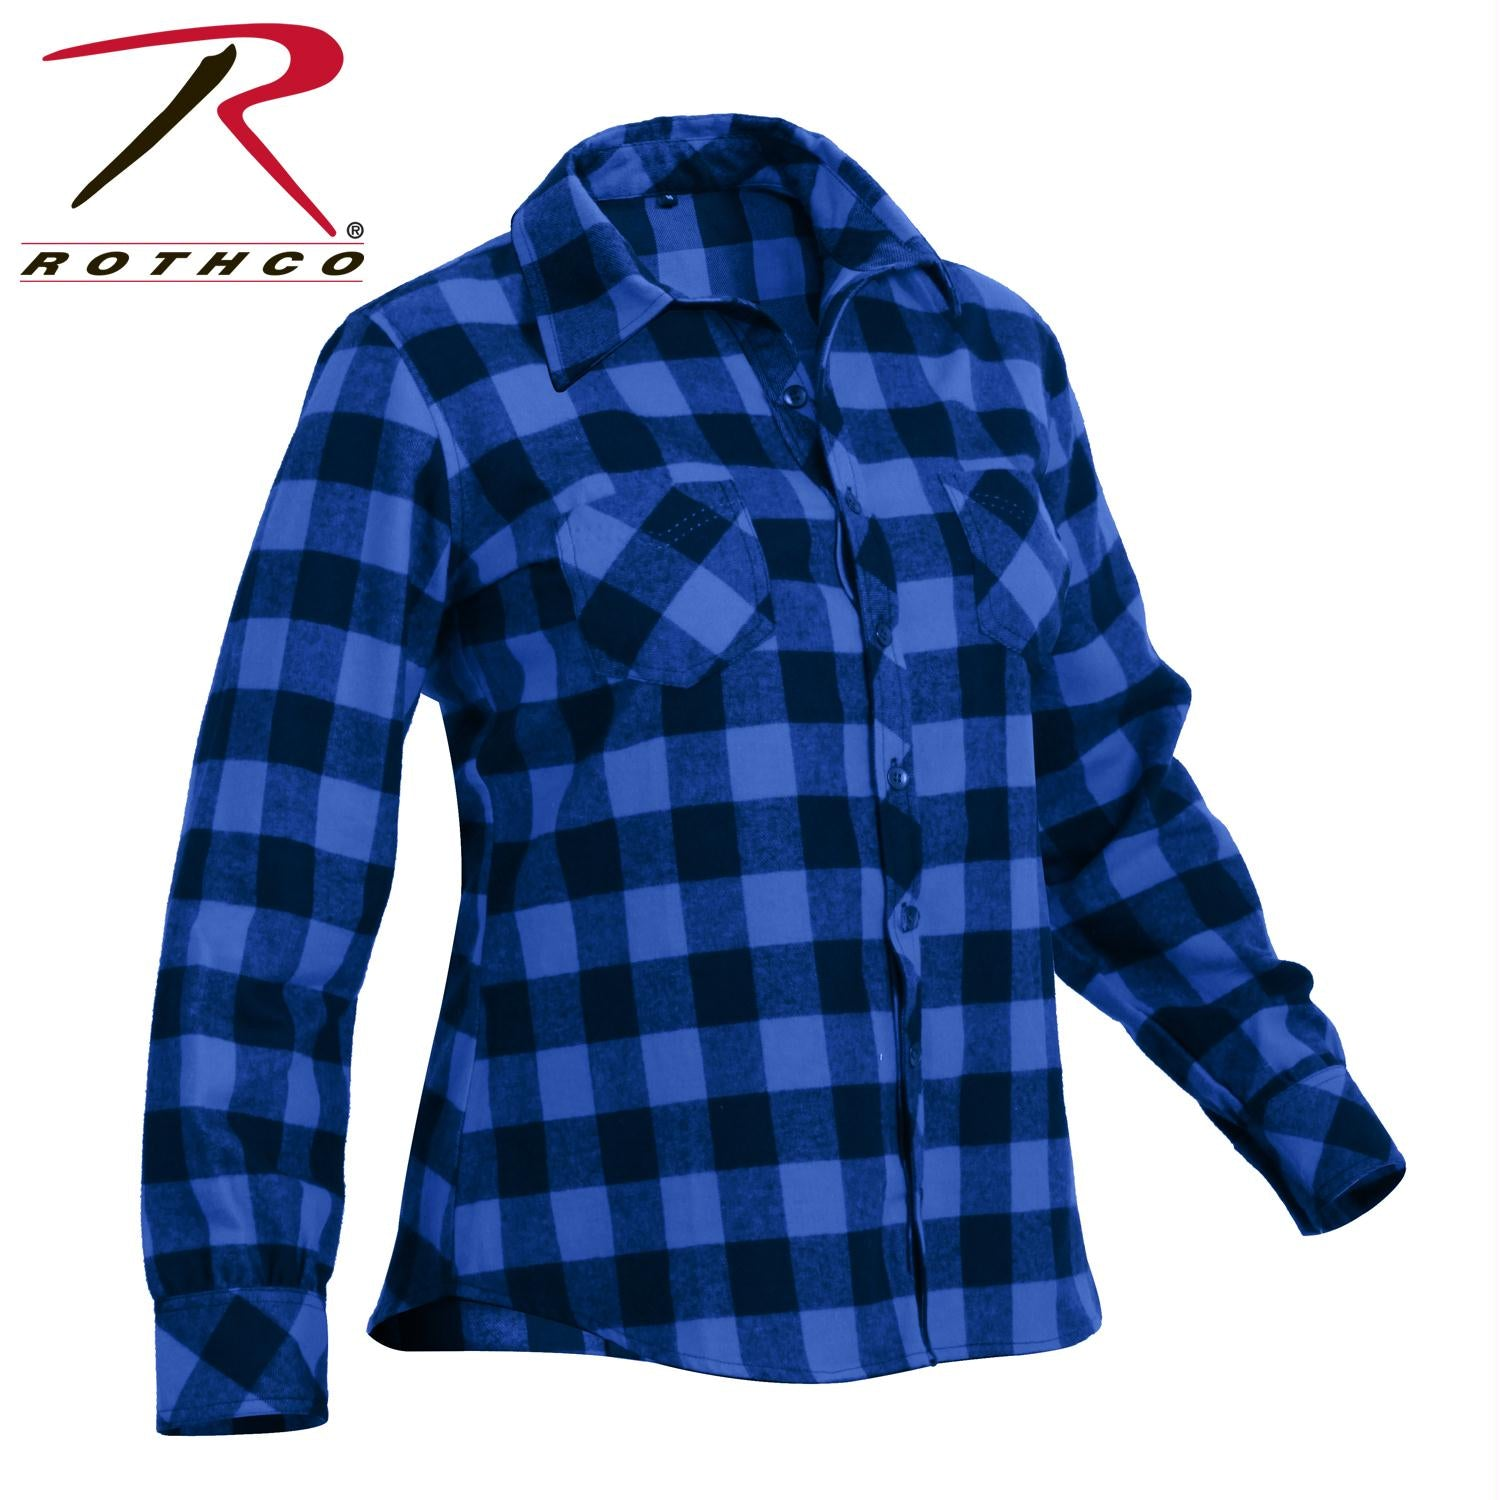 Rothco Womens Plaid Flannel Shirt - Blue / Black / M